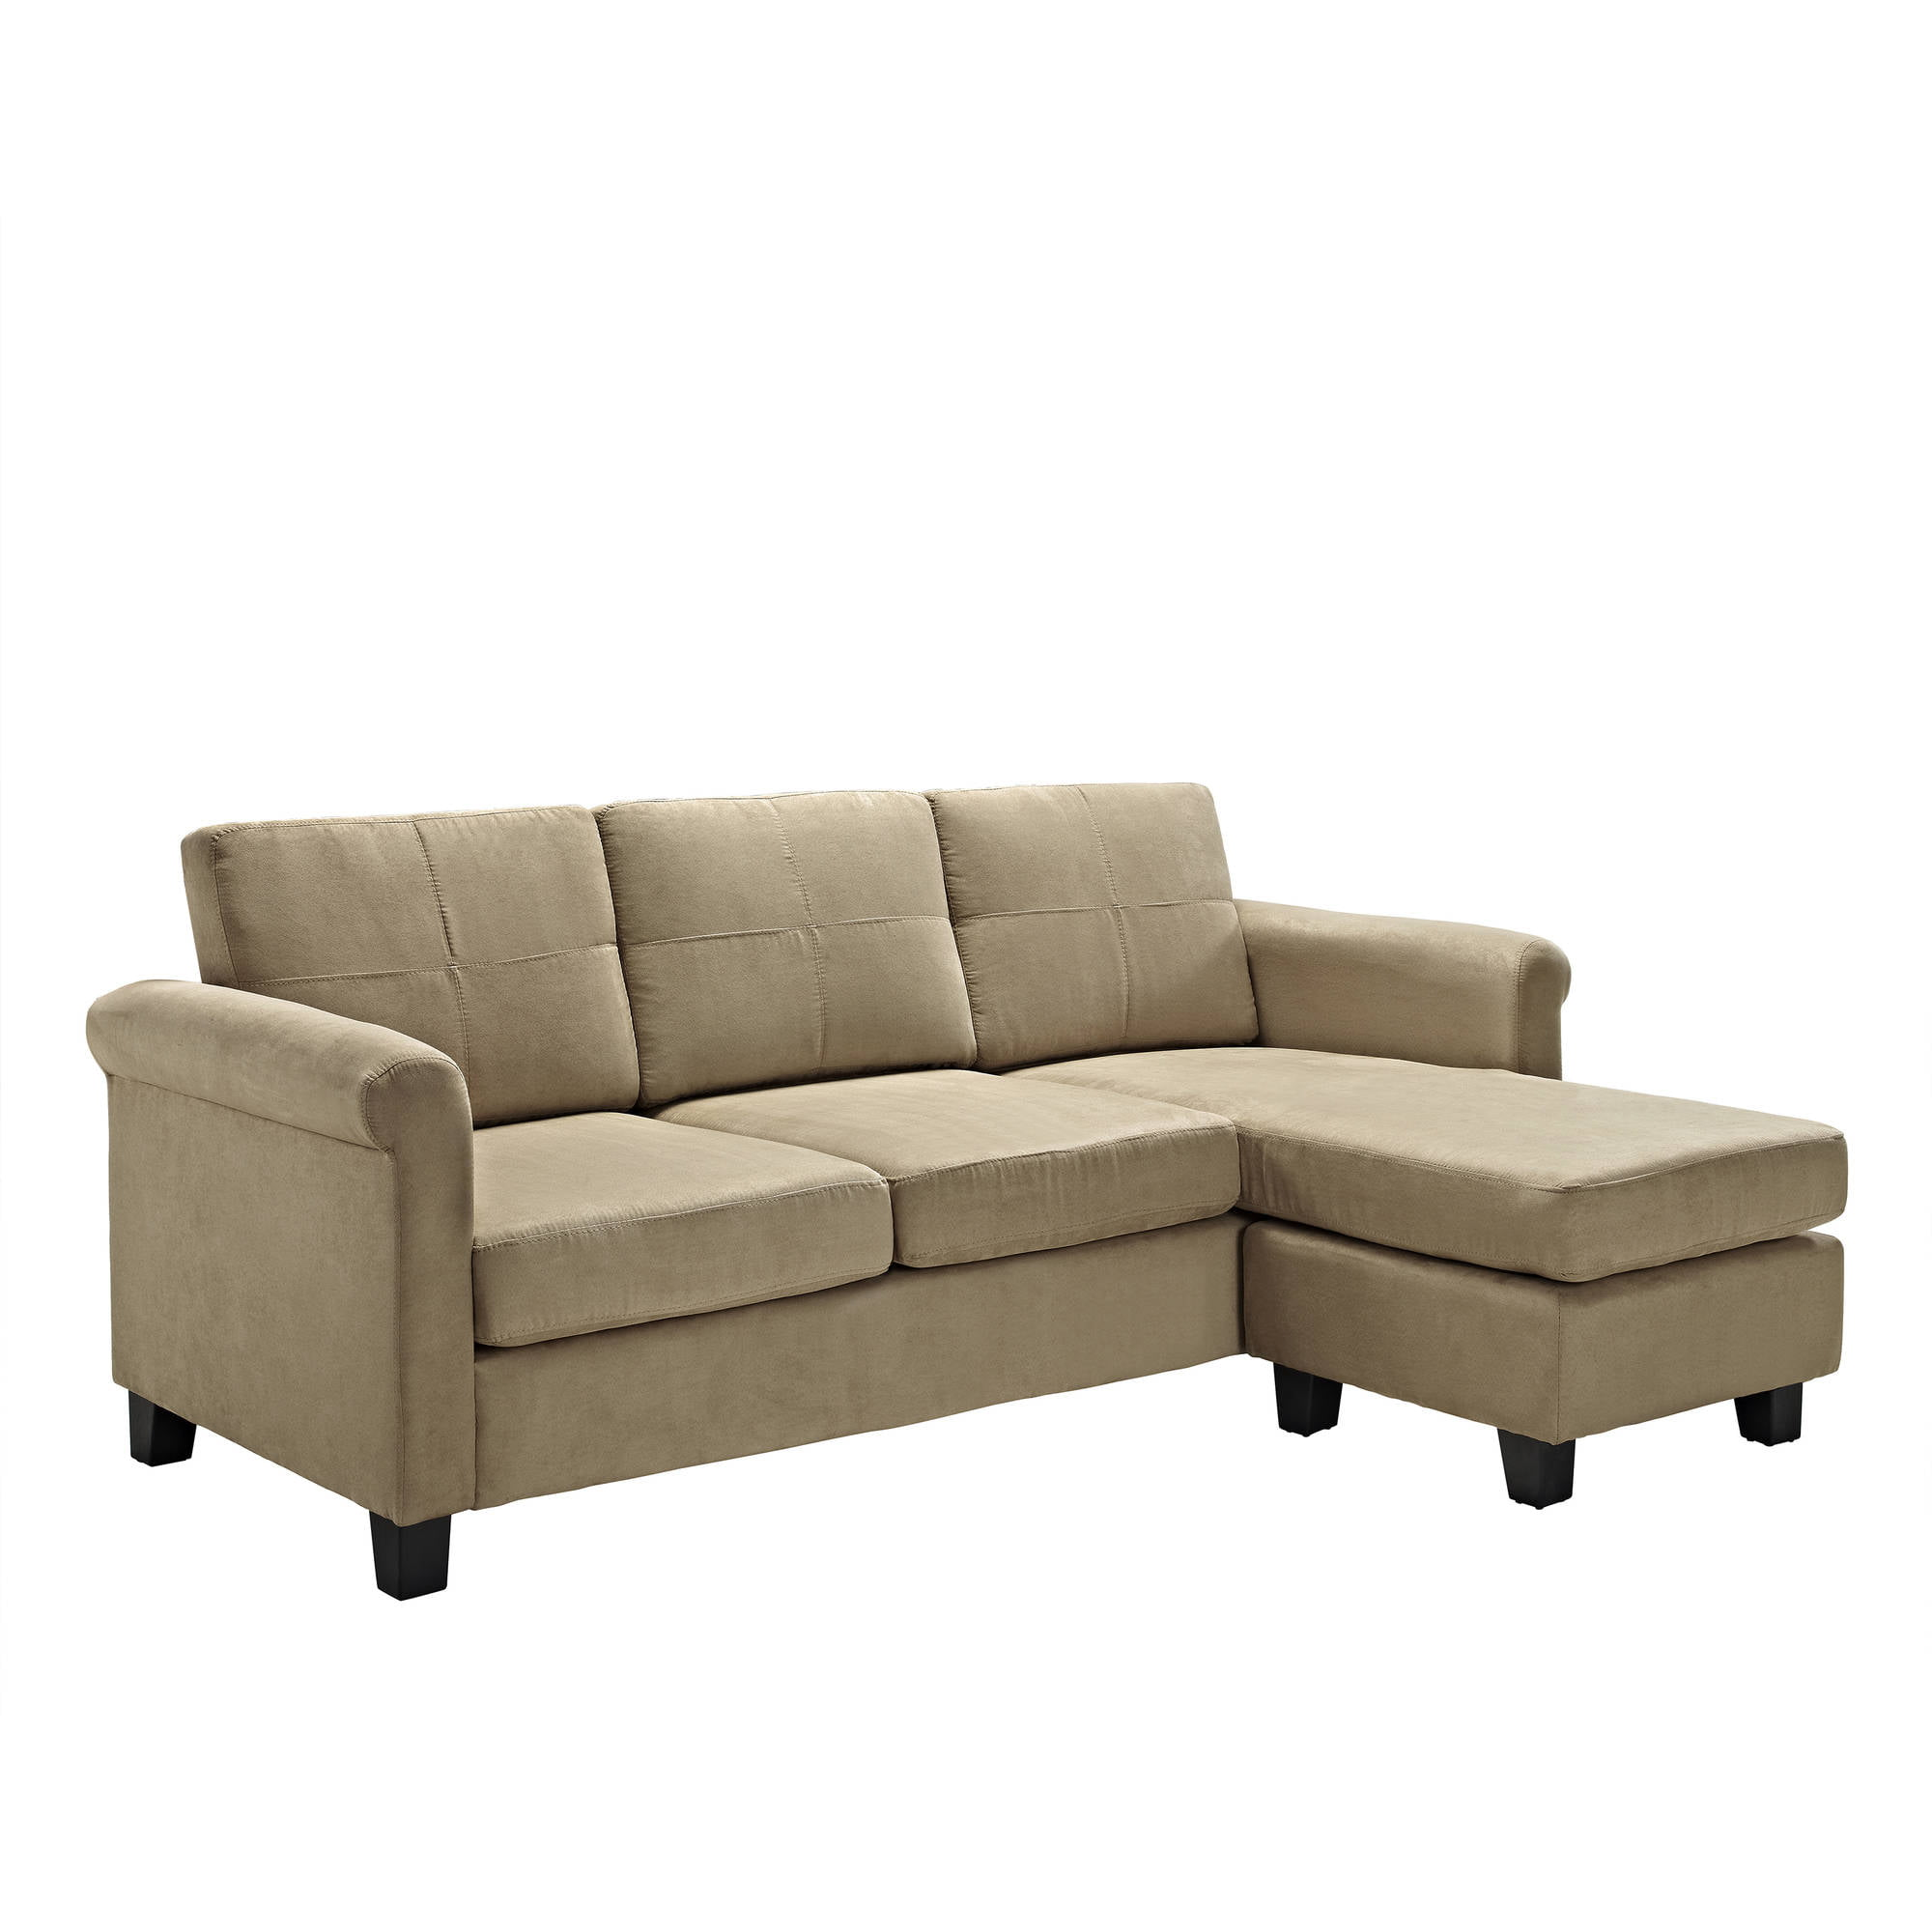 Incroyable Dorel Living Small Spaces Configurable Sectional Sofa, Multiple Colors    Walmart.com